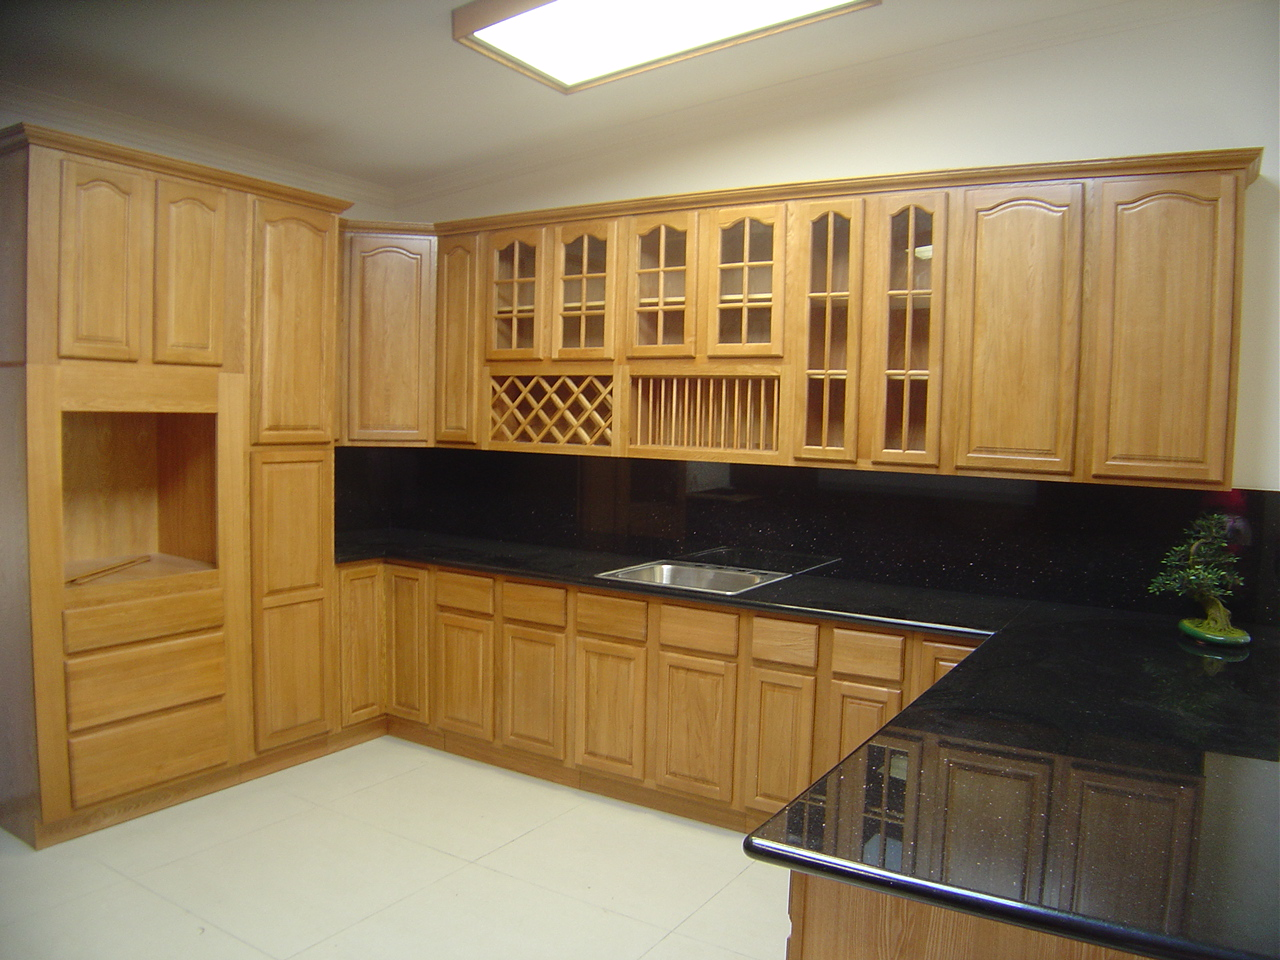 Kitchen Cabinet Designer Cabinets Knotty Alder Special Design And Decor Interior